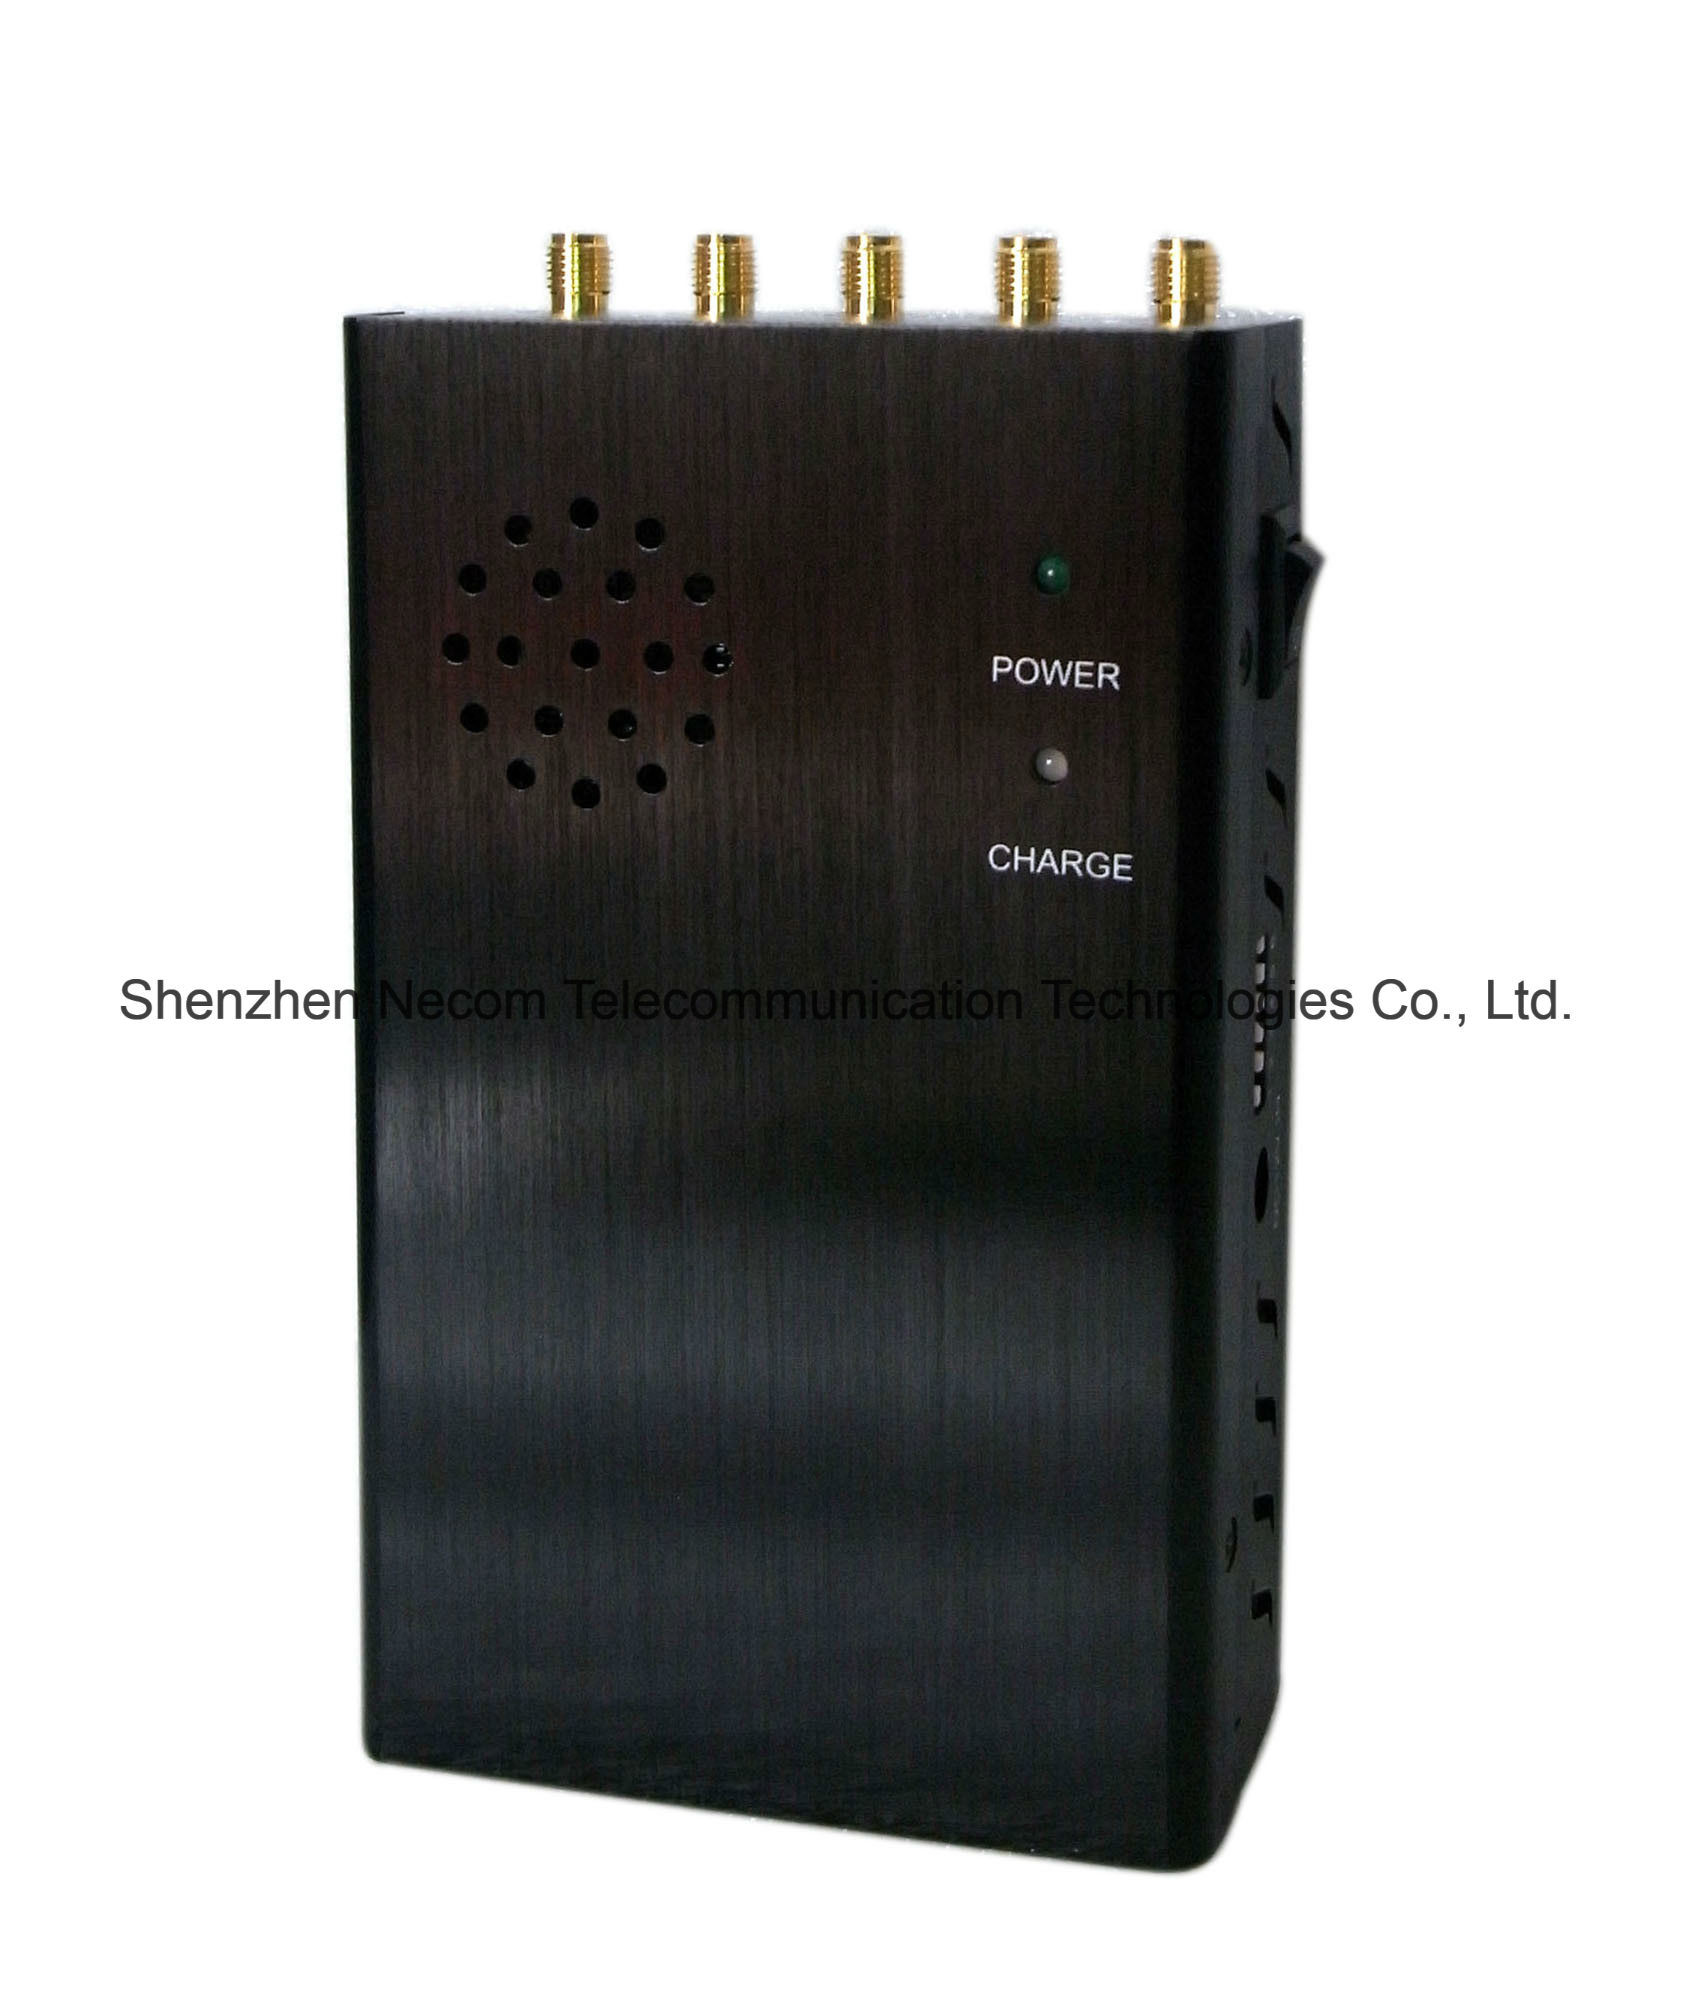 phone line jammer security - China Wireless Signal Jammer with Good Quality&Favourable Price Jamming for Wired Camera, GPS Tracker, Mobile Phones, GSM Jammer/GPS Jammer /Cell Phone Jammer - China 5 Band Signal Blockers, Five Antennas Jammers